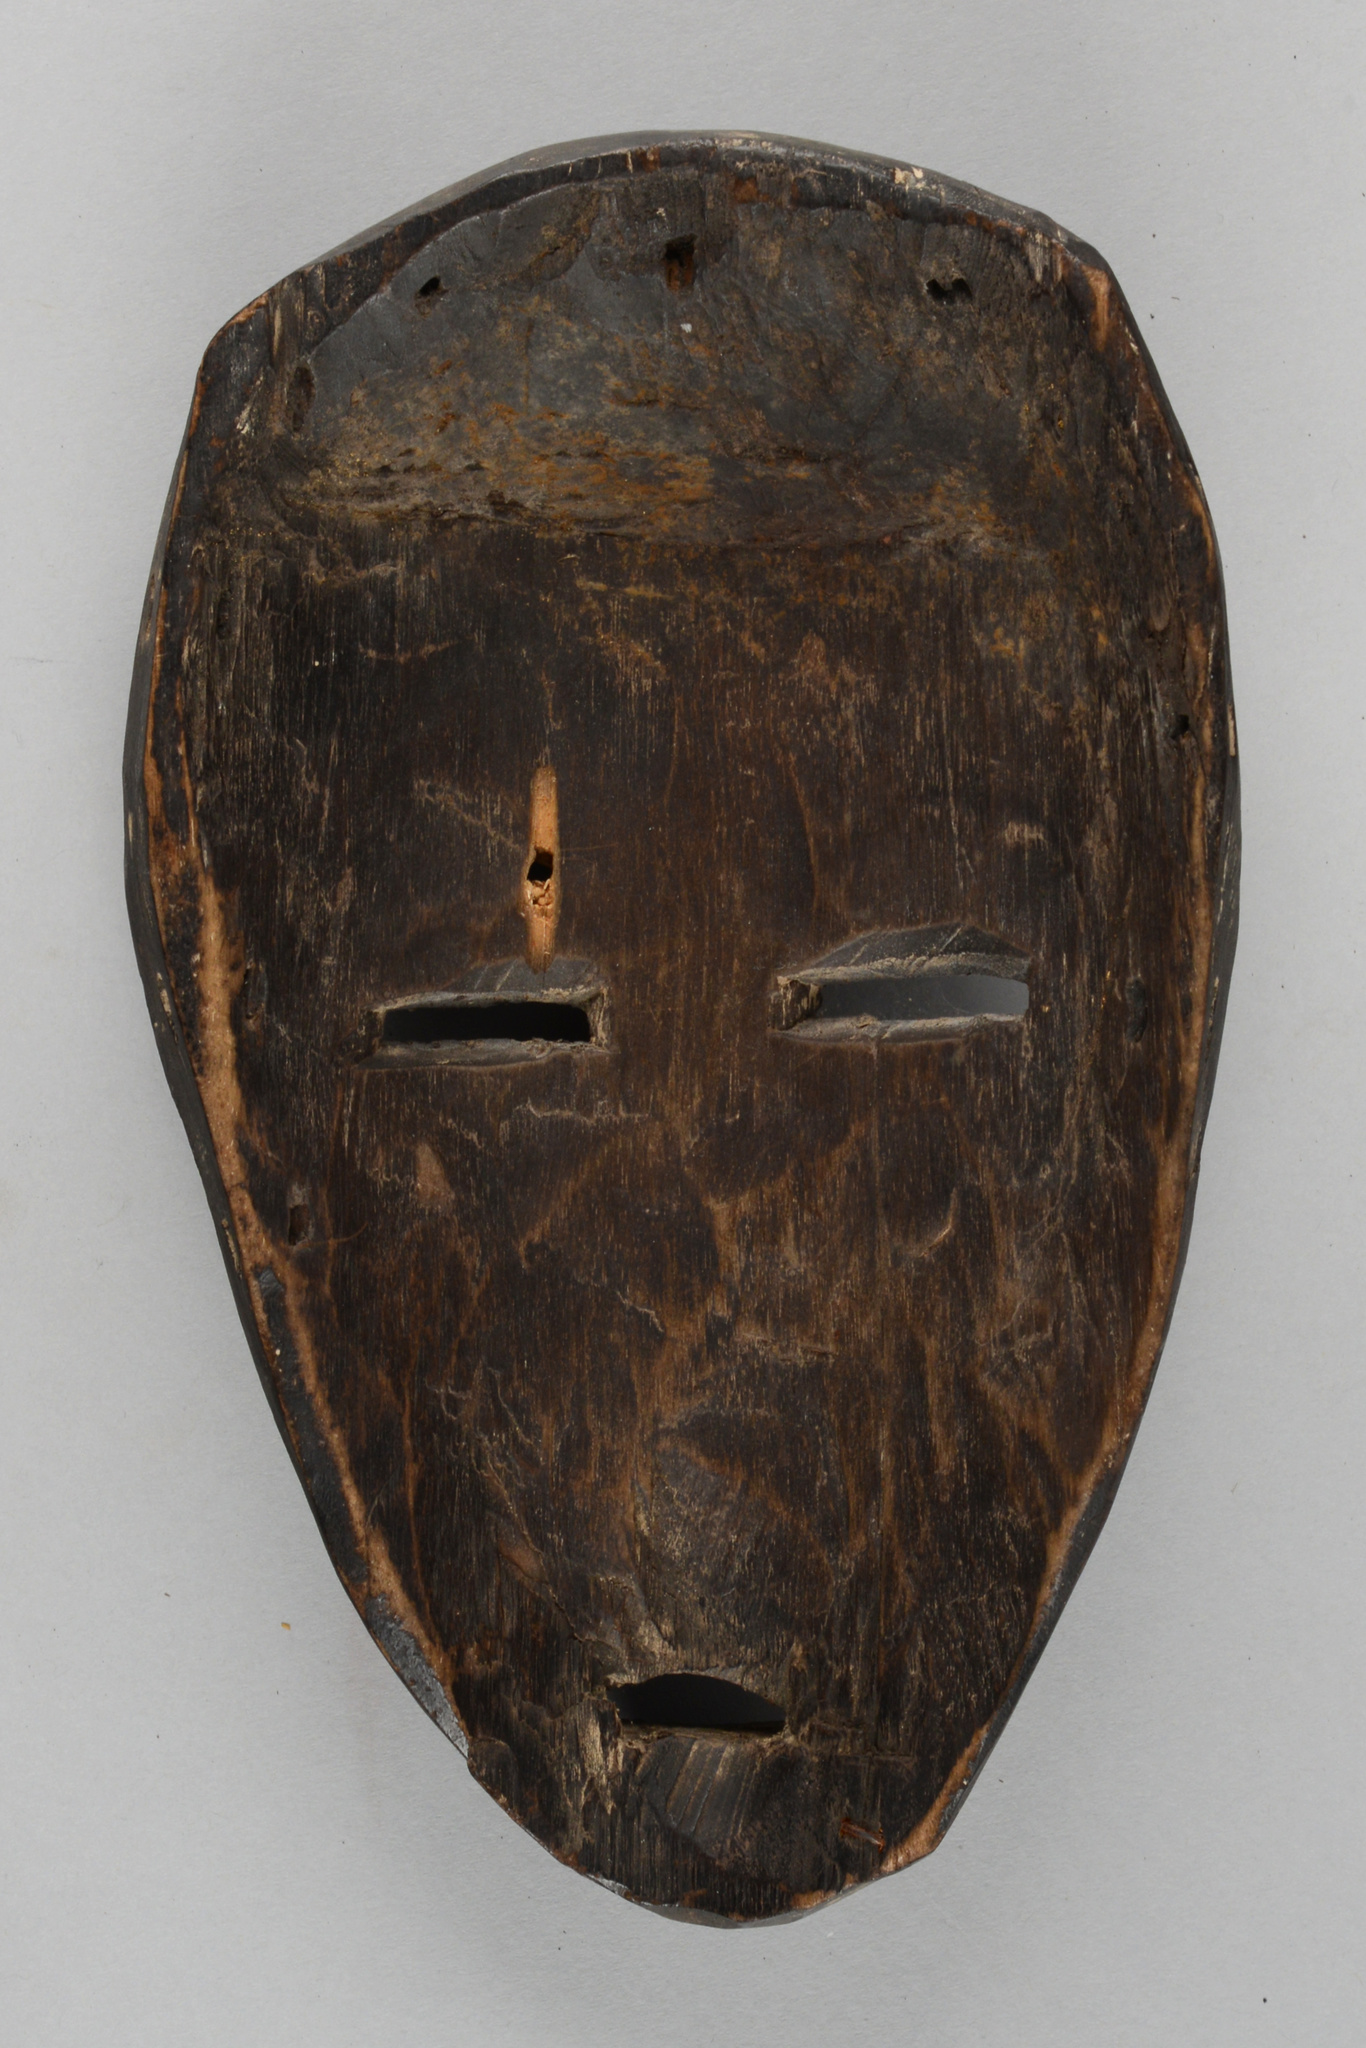 Anthropo-zoomorphic mask (monkey)